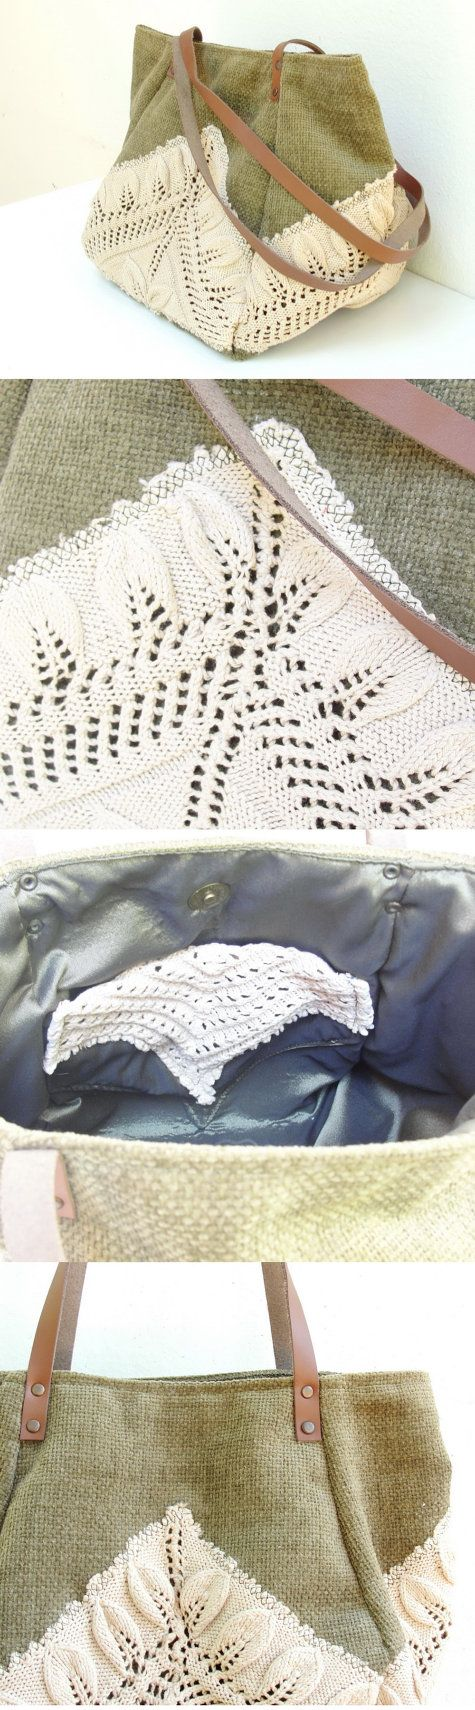 Good Old Times- Vintage Doily, Cotton and Leather Bag